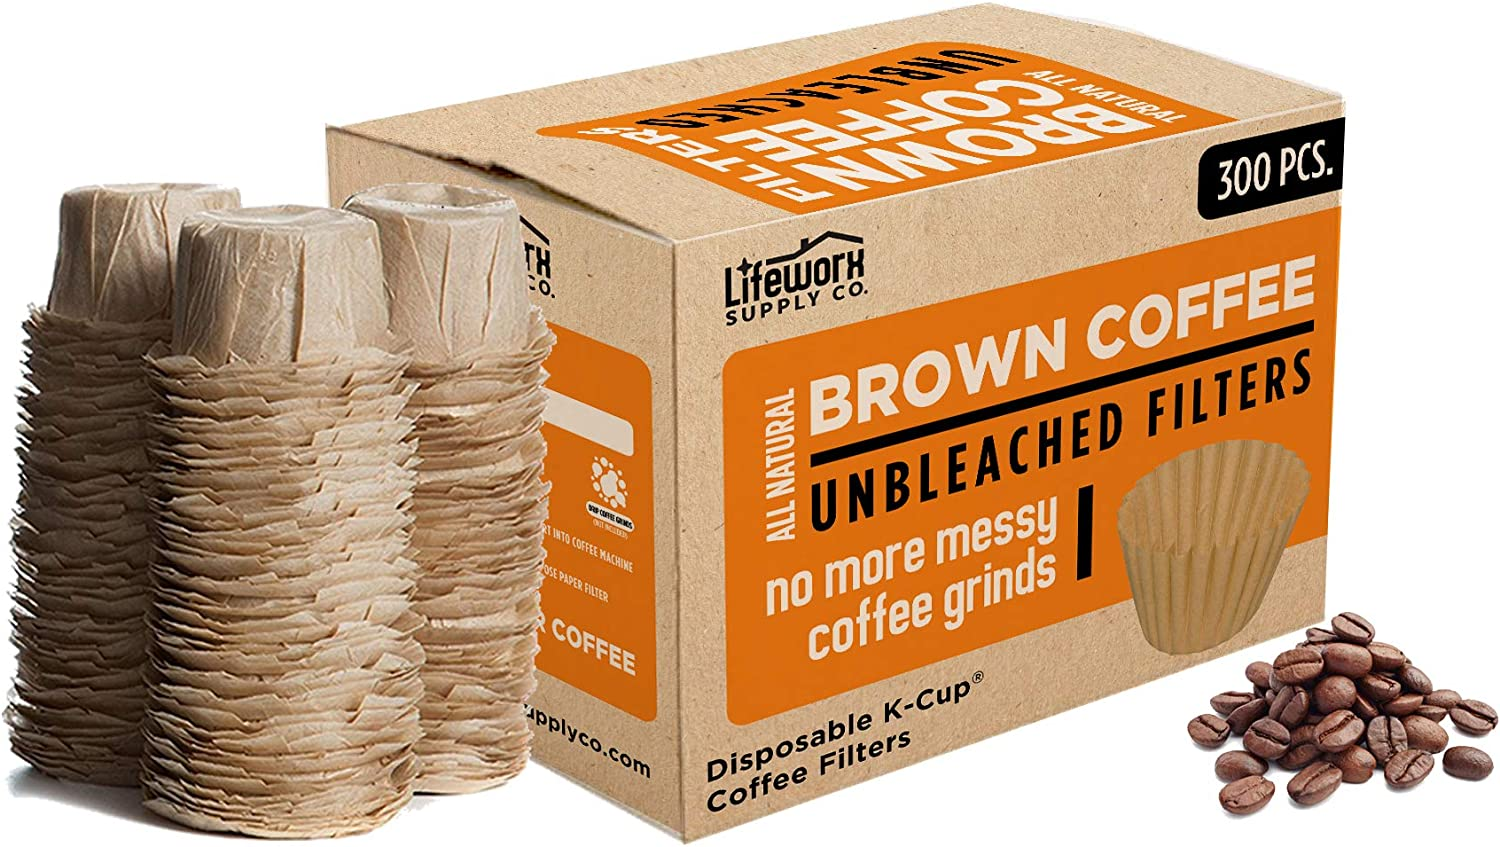 100% Natural Brown Unbleached Disposable Filters - Los Angeles Mall Austin Mall Paper Coffee